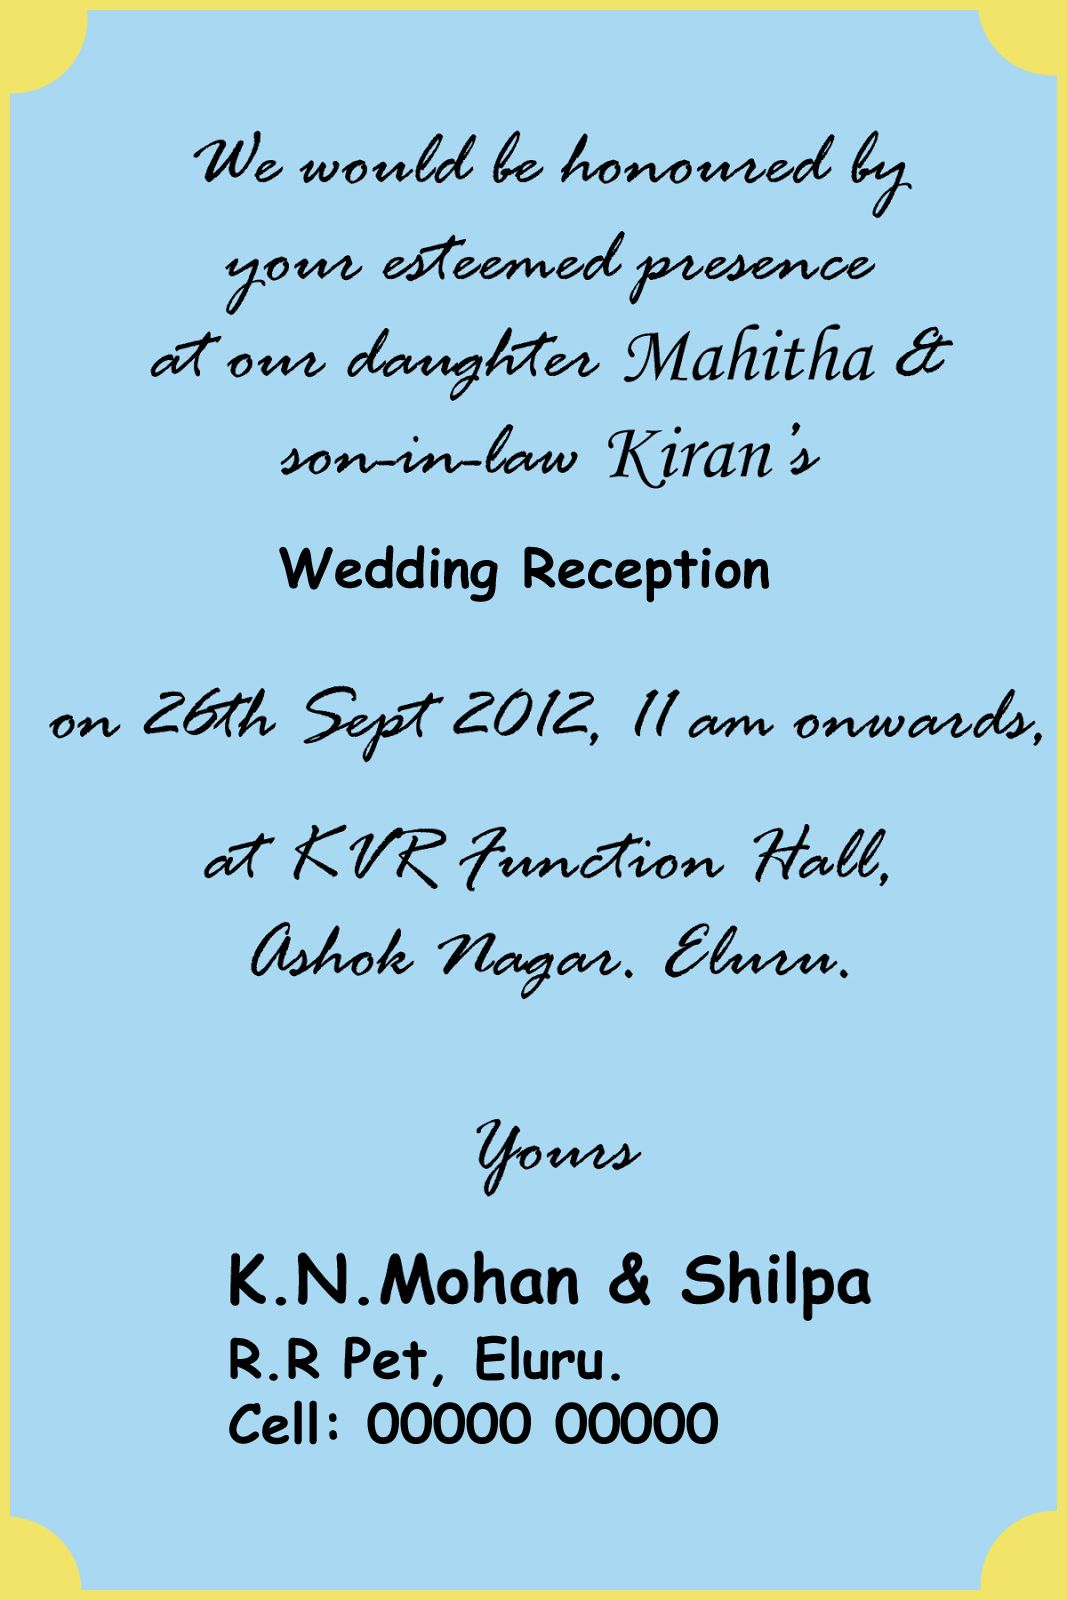 10 Format Of Hindu Wedding Invitation Wording In English For Friends And Review Di 2020